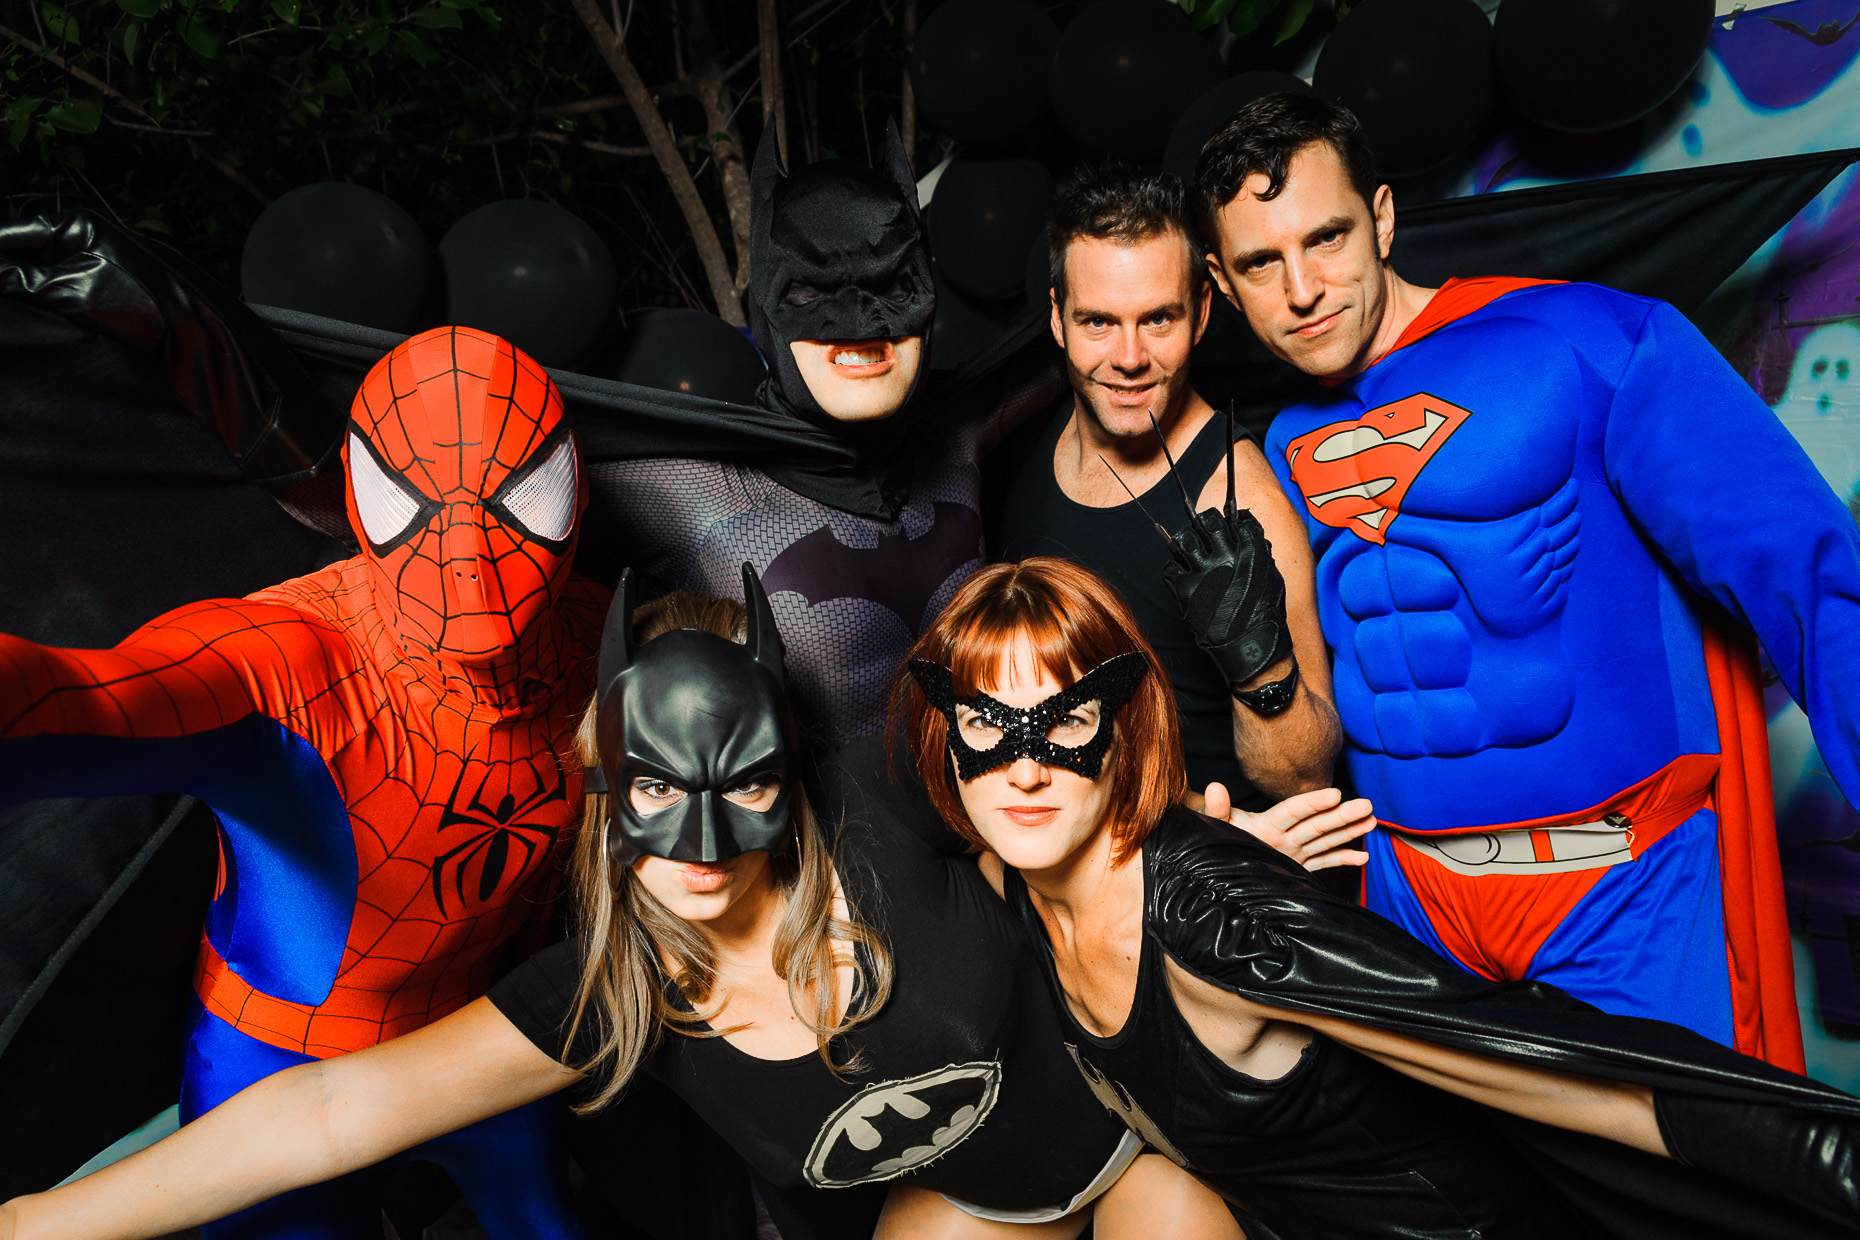 Austin-Event-Commercial-Photographer-Photobooth-Halloween-superman.jpg